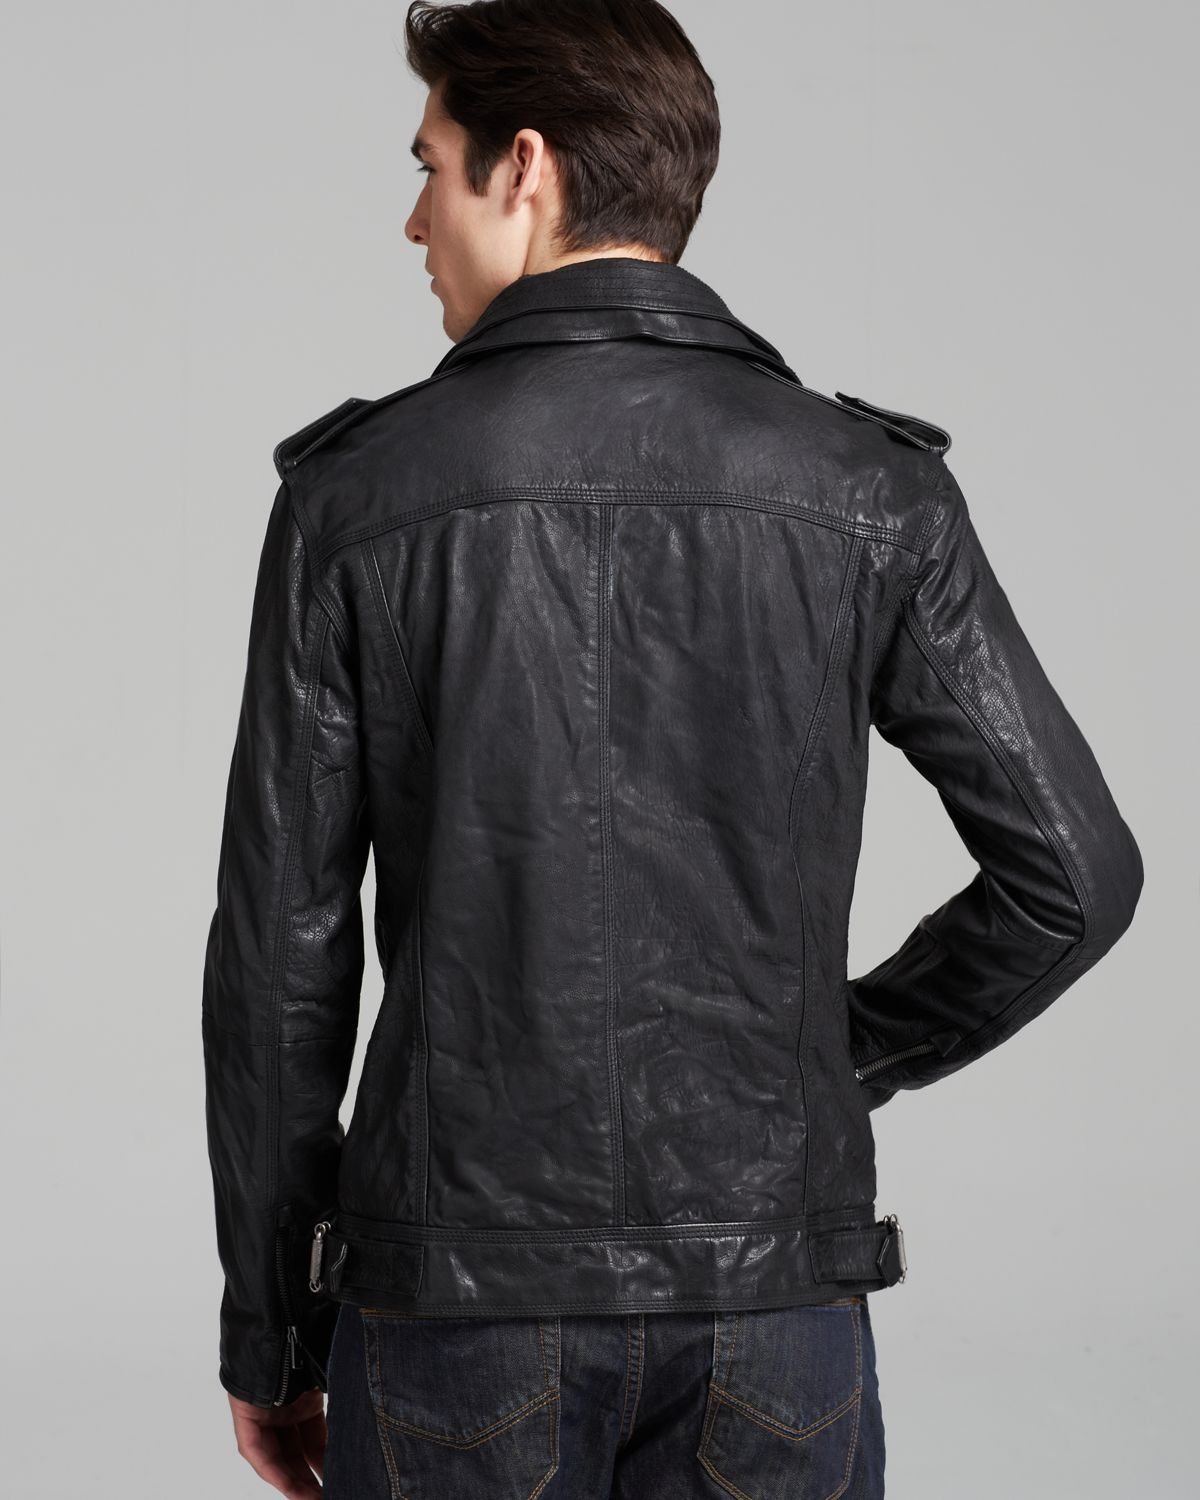 Leather jacket superdry - Gallery